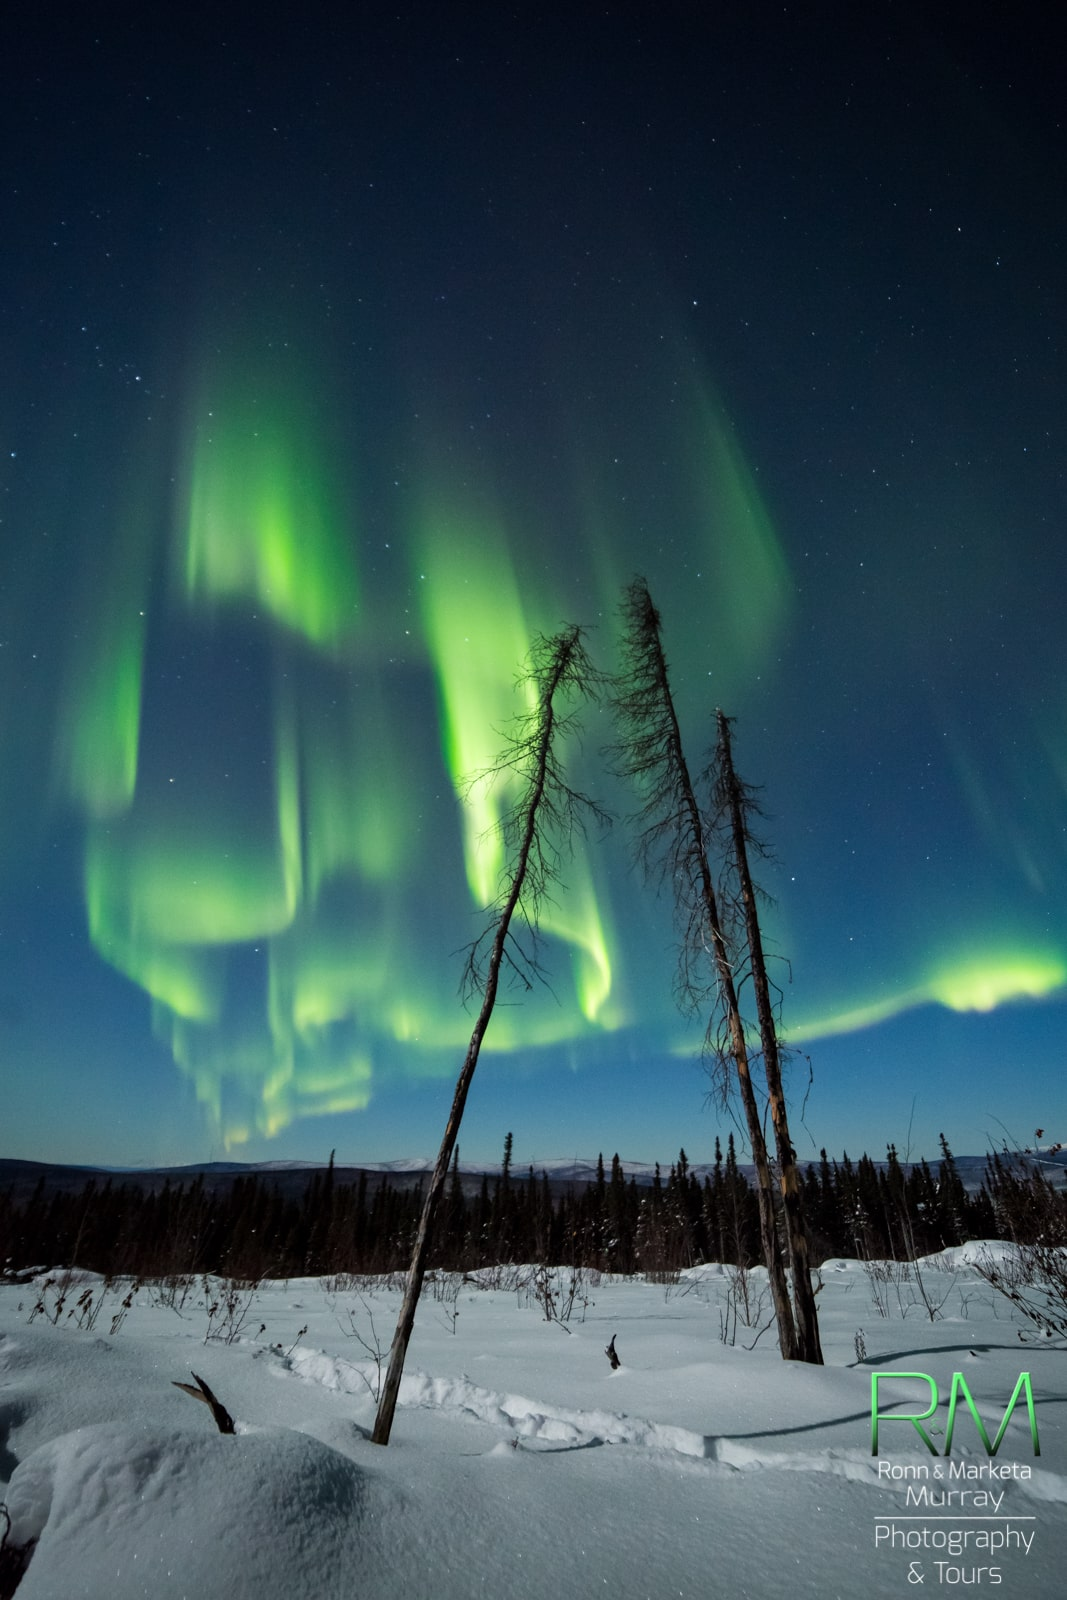 Taken by Marketa S Murray on January 2, 2015 @ Fairbanks, Alaska. Found on http://spaceweathergallery.com/